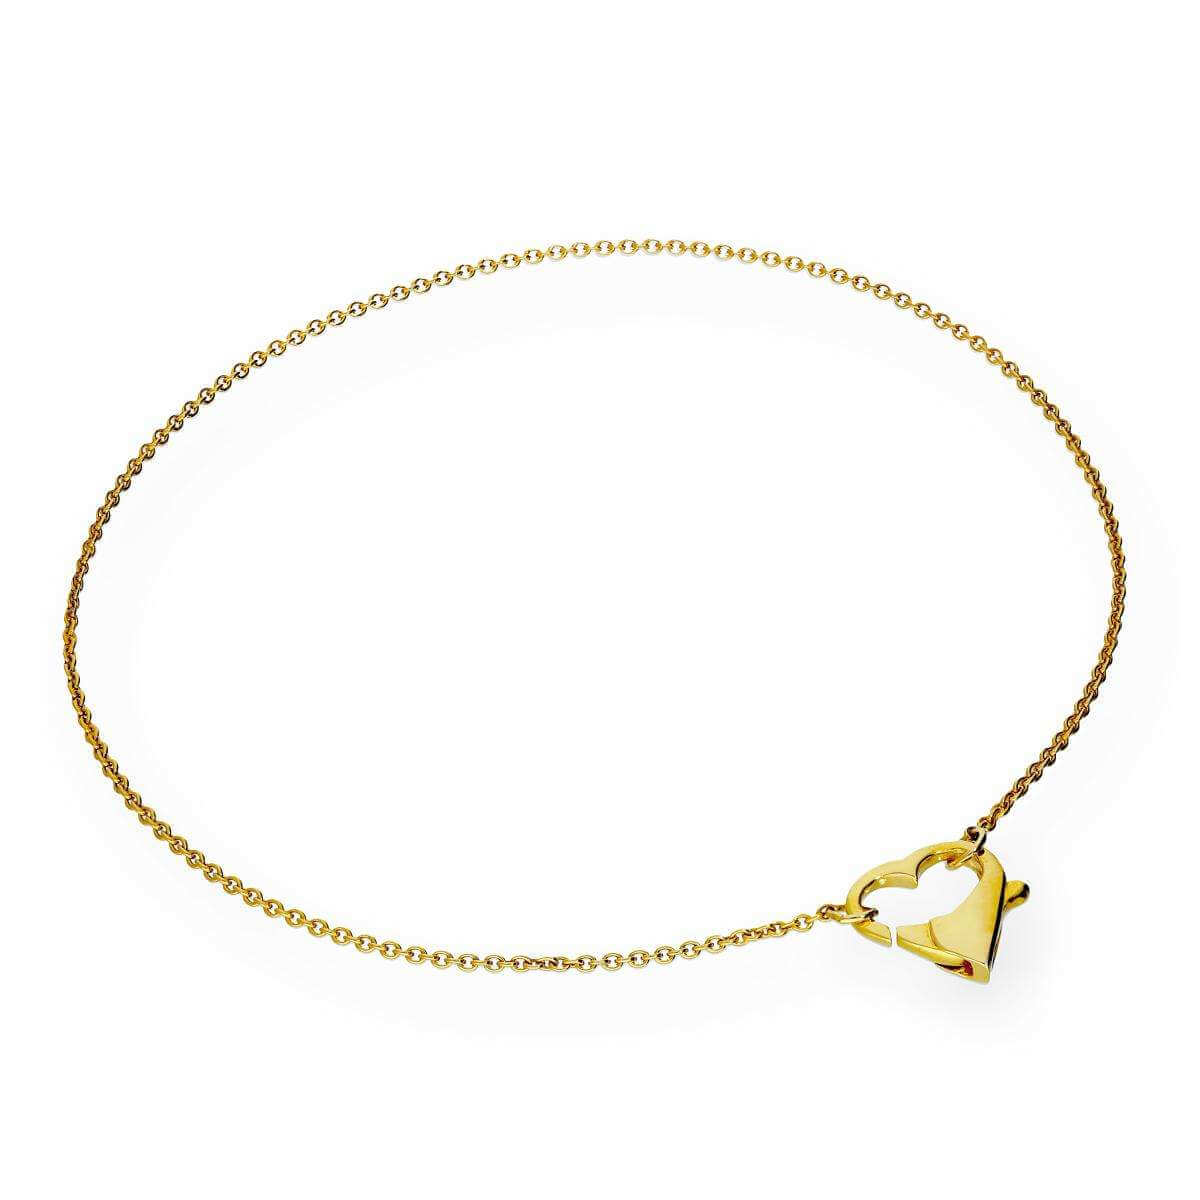 9ct Gold 7.5 Inch Bracelet with Heart Clasp